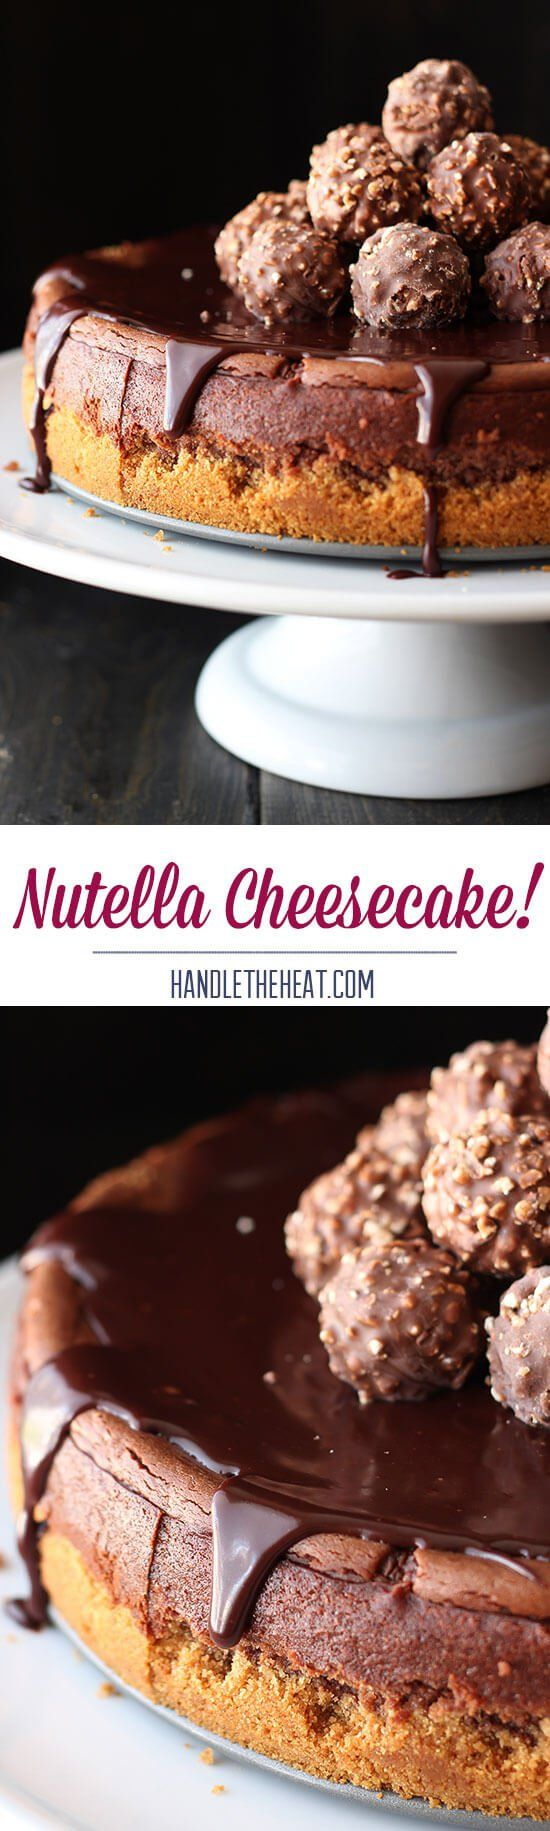 Nutella Cheesecake. This. is. DIVINE!! SO easy to make and tastes OUTSANDING. Ingredients: graham crackers, butter, cream cheese, semisweet chocolate, eggs, sugar, cocoa, Nutella, heavy cream, vanilla, hazelnut liquor (optional)